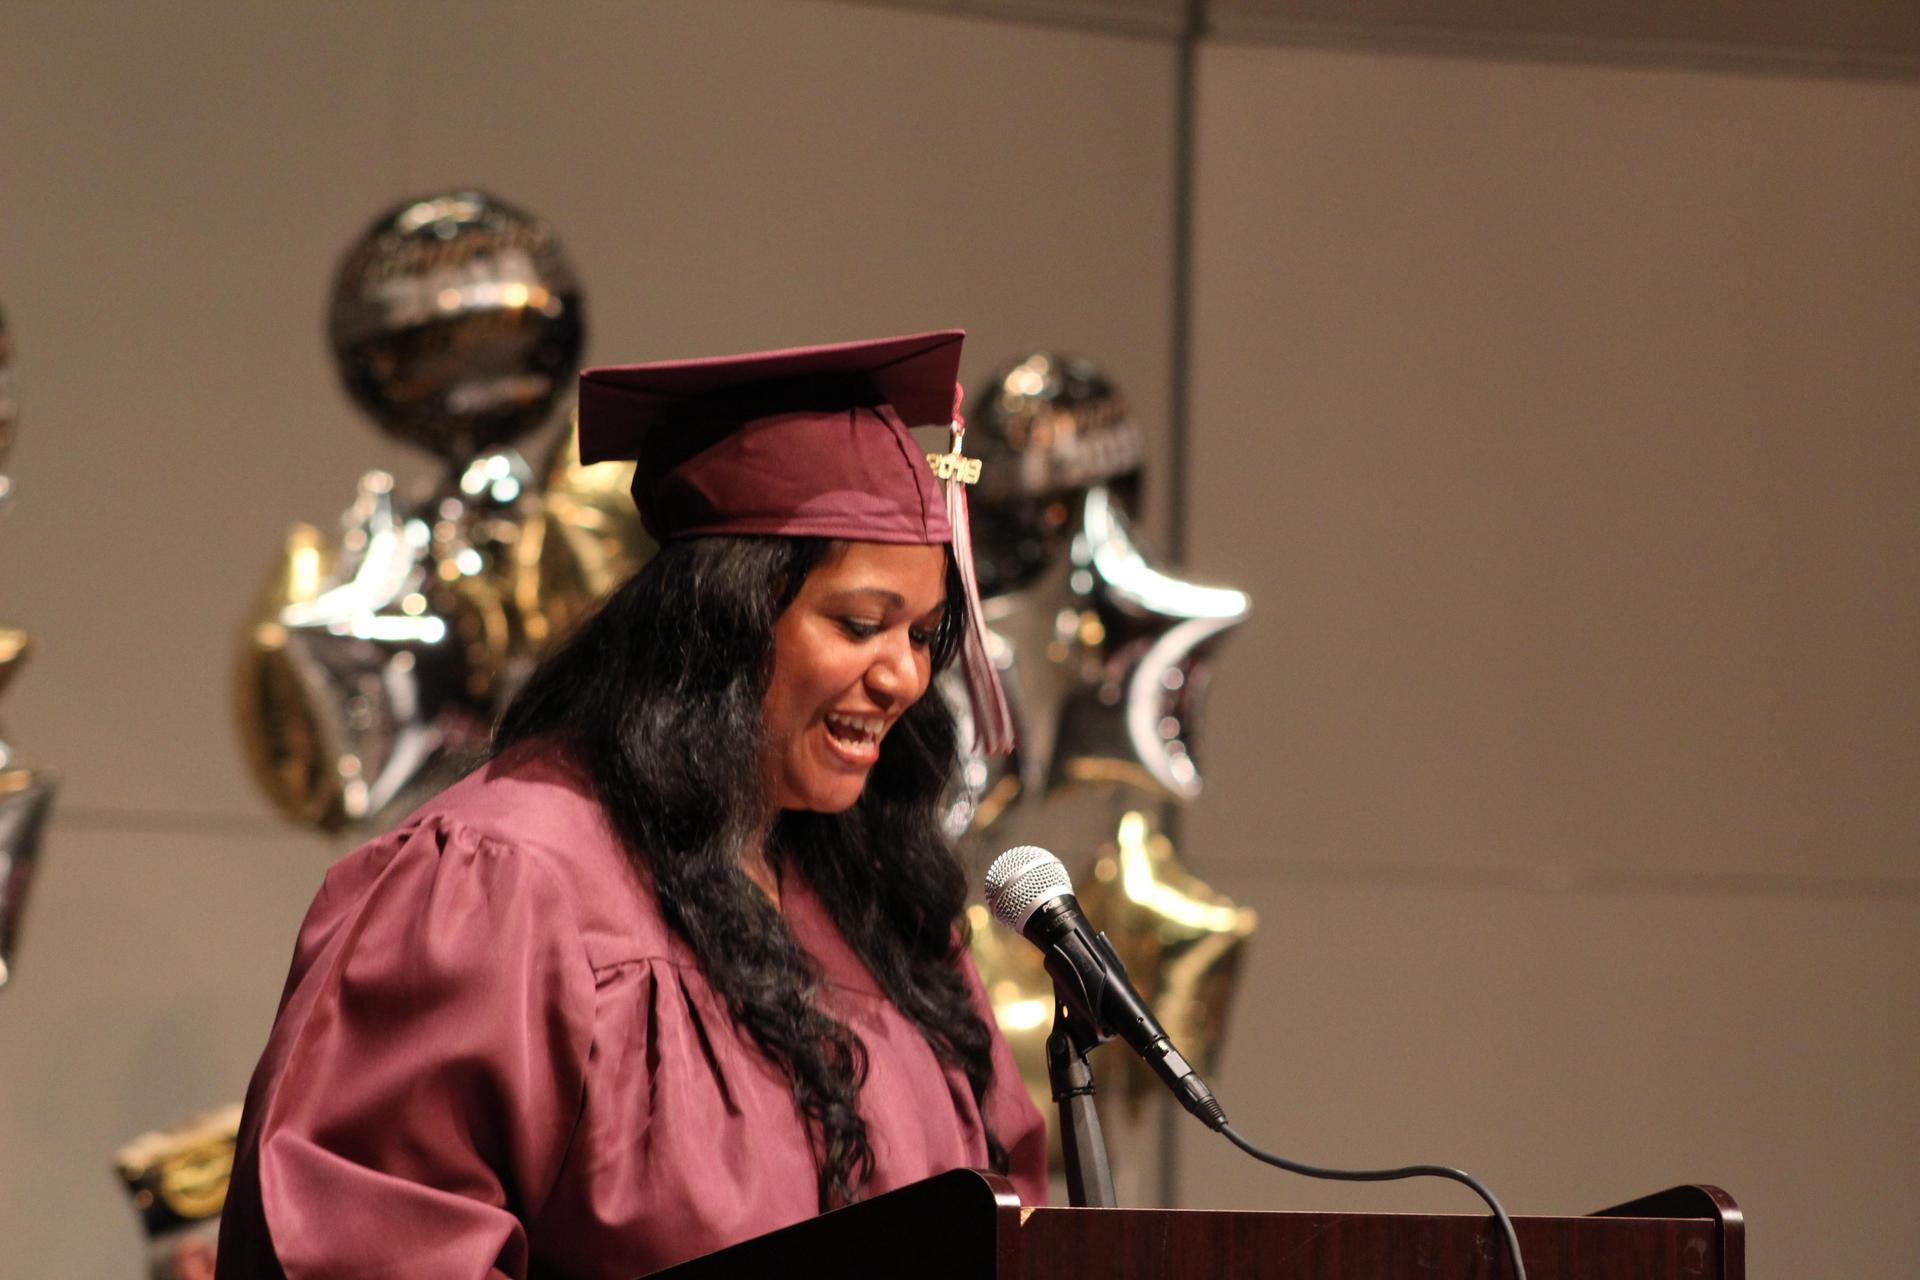 Graduate speaking at podium during graduation ceremony